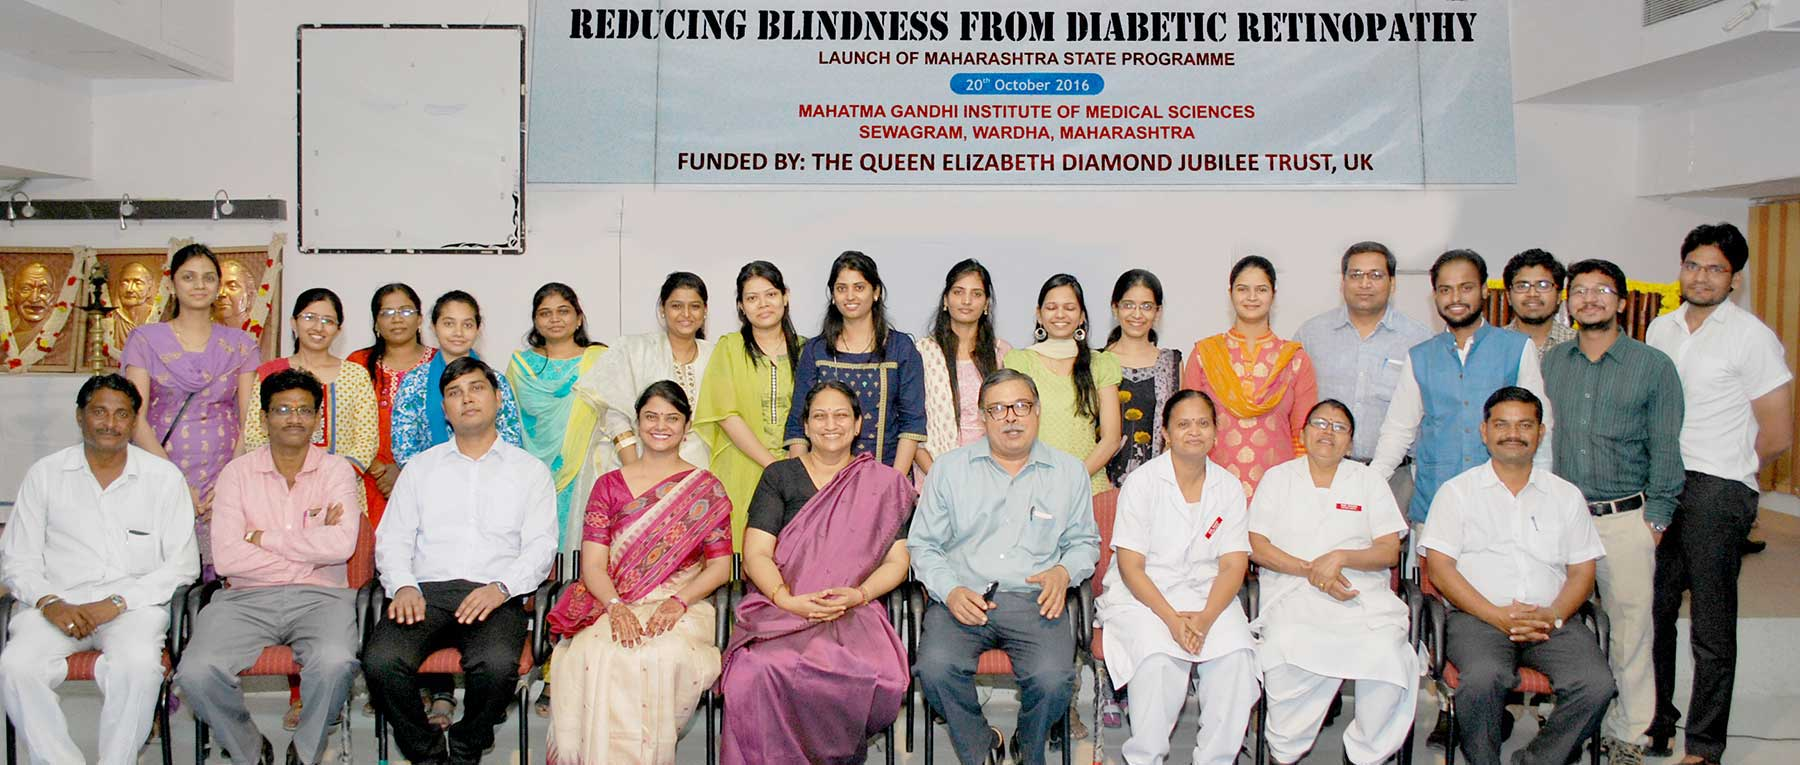 Reducing Blindness from Diabetic Retinopathy in Wardha